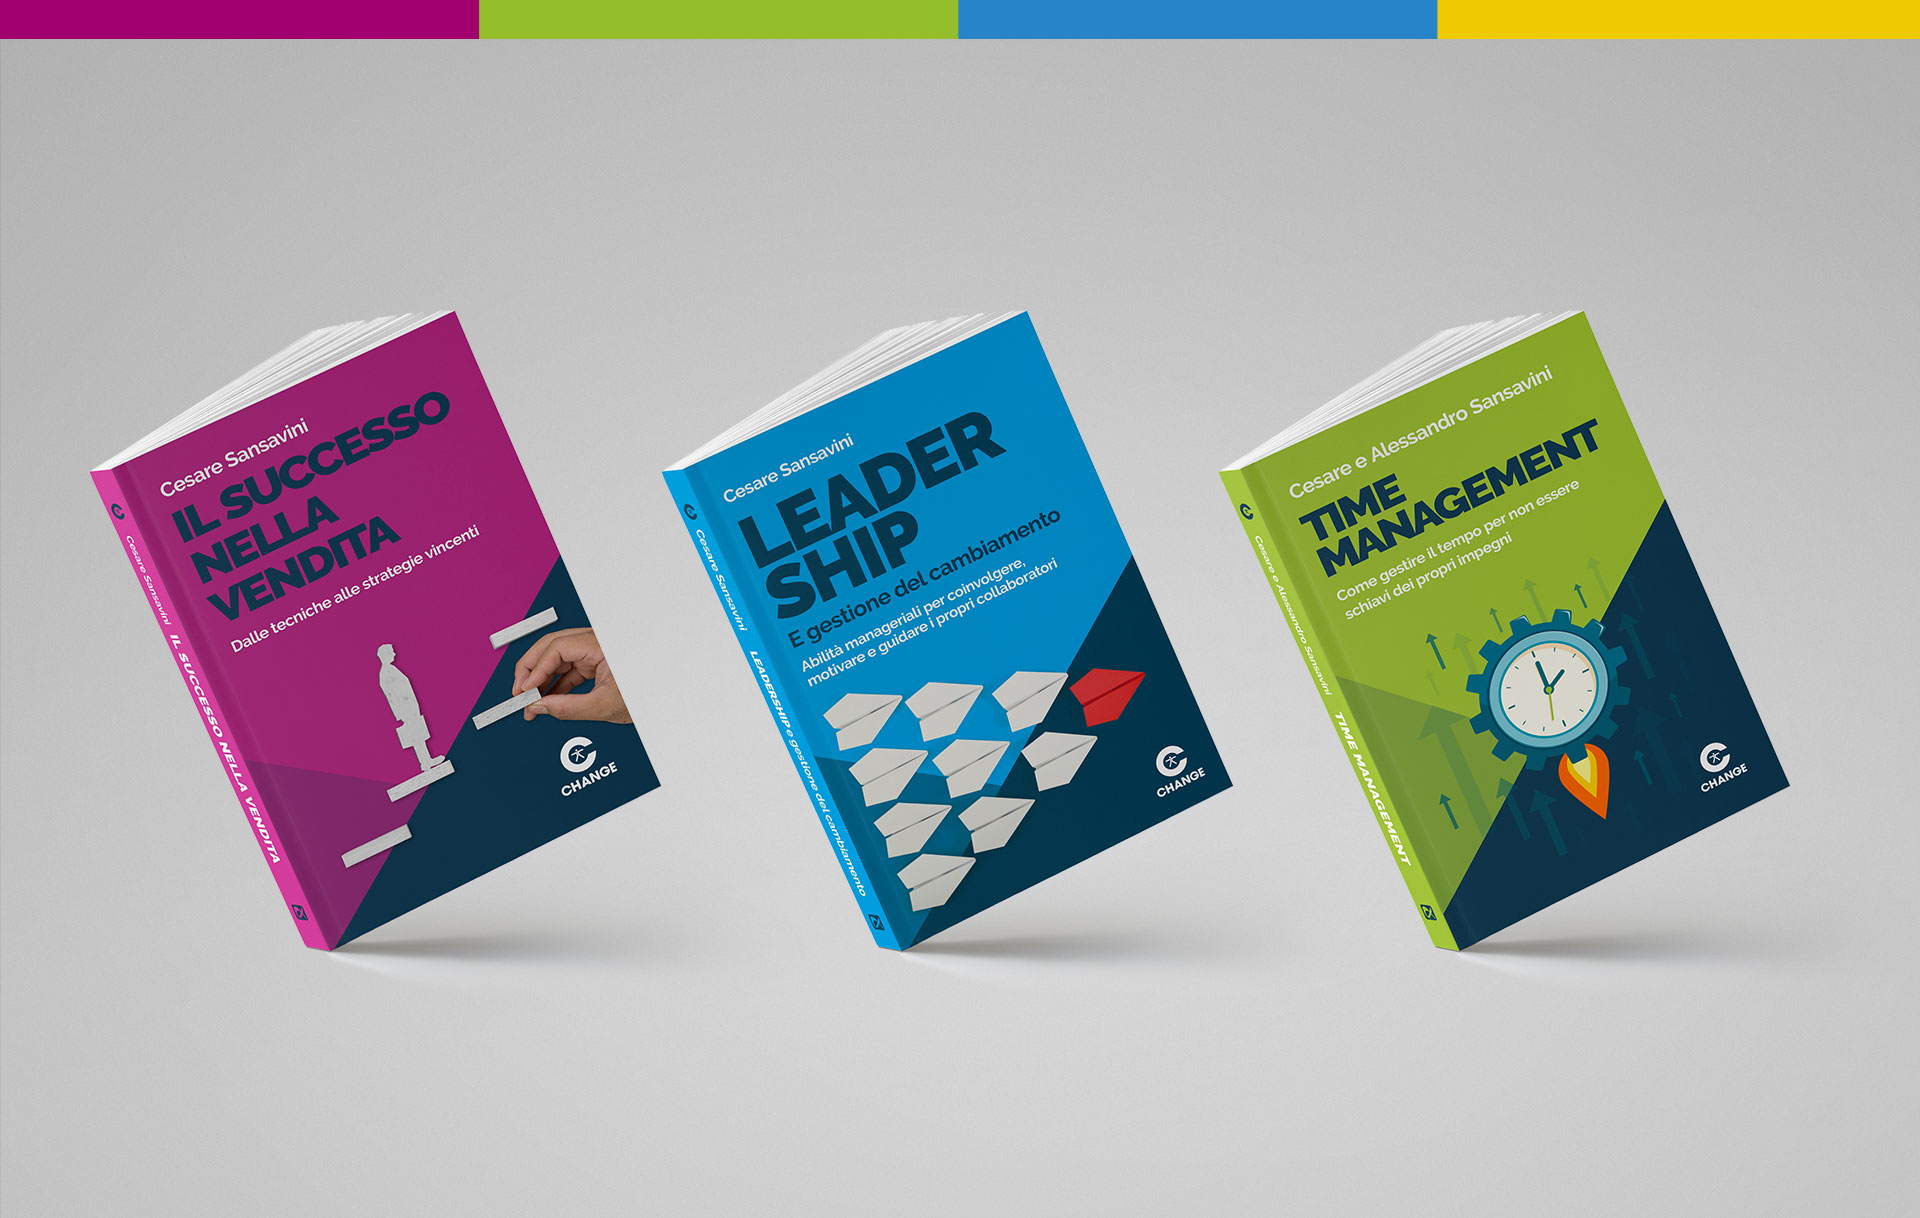 change-project-book-covers-zerouno-design